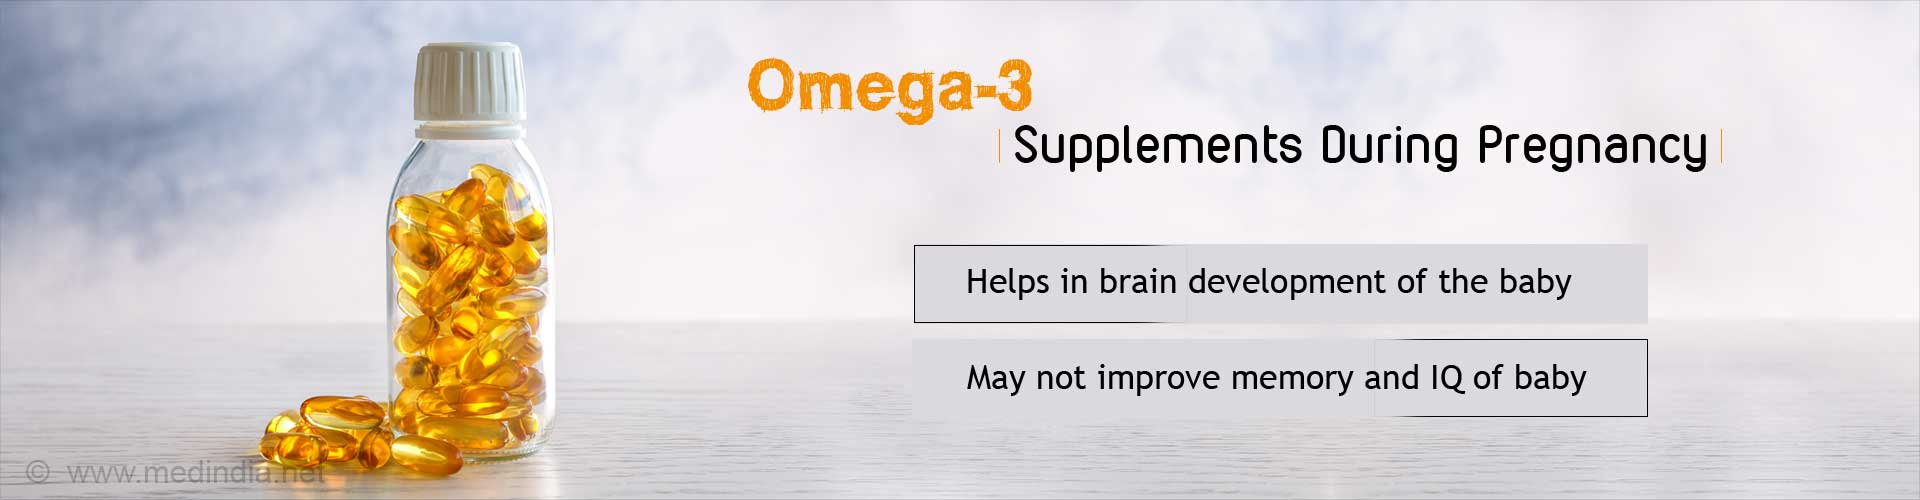 Beware Mothers-to-be! DHA Supplements May Not Do Your Fetus Any Good